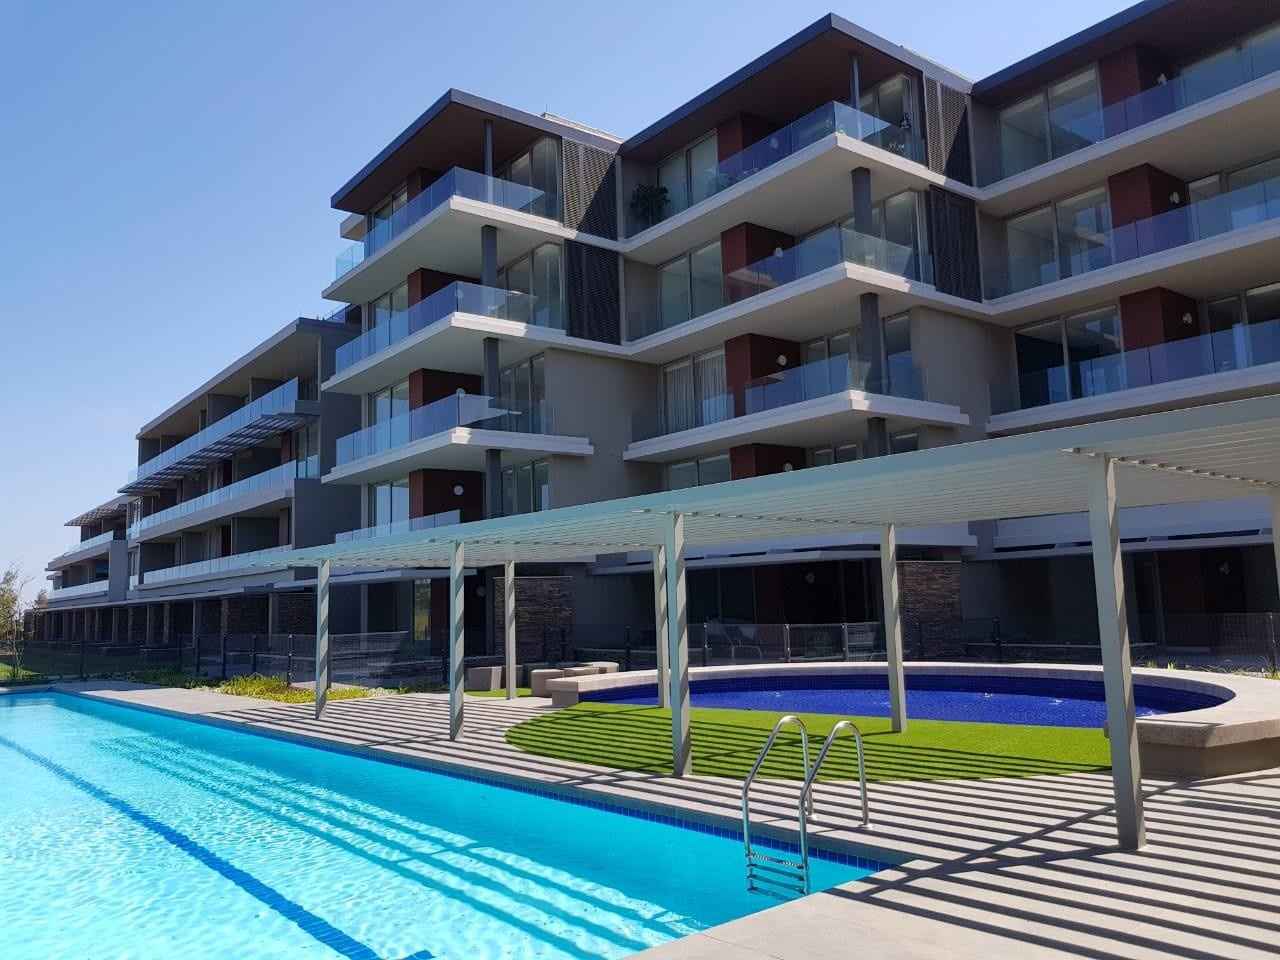 9 Bedroom Apartment To Let in Umhlanga | Tyson Properties